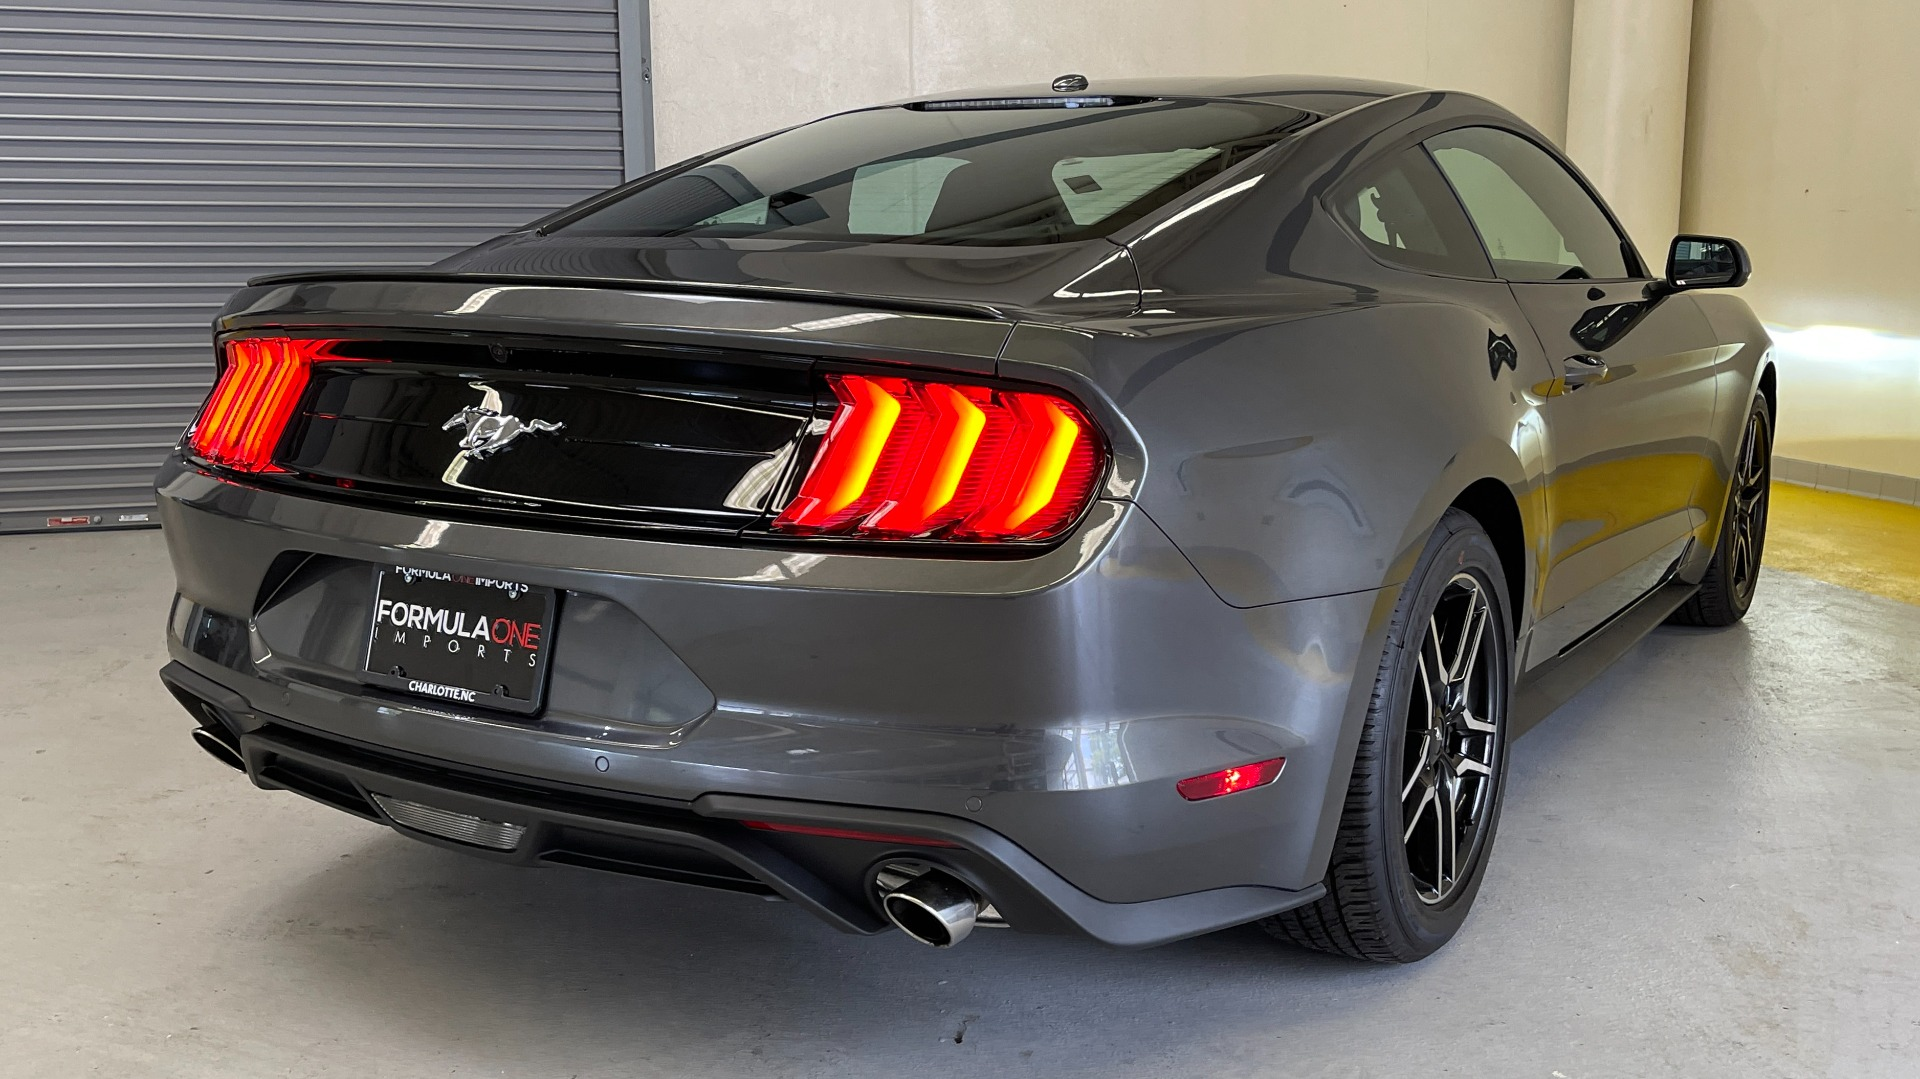 Used 2019 Ford MUSTANG ECOBOOST 2.3L / 10-SPD AUTO / SYNC3 8INCH SCREEN / TRACK APPS / REARVIEW for sale $31,795 at Formula Imports in Charlotte NC 28227 7